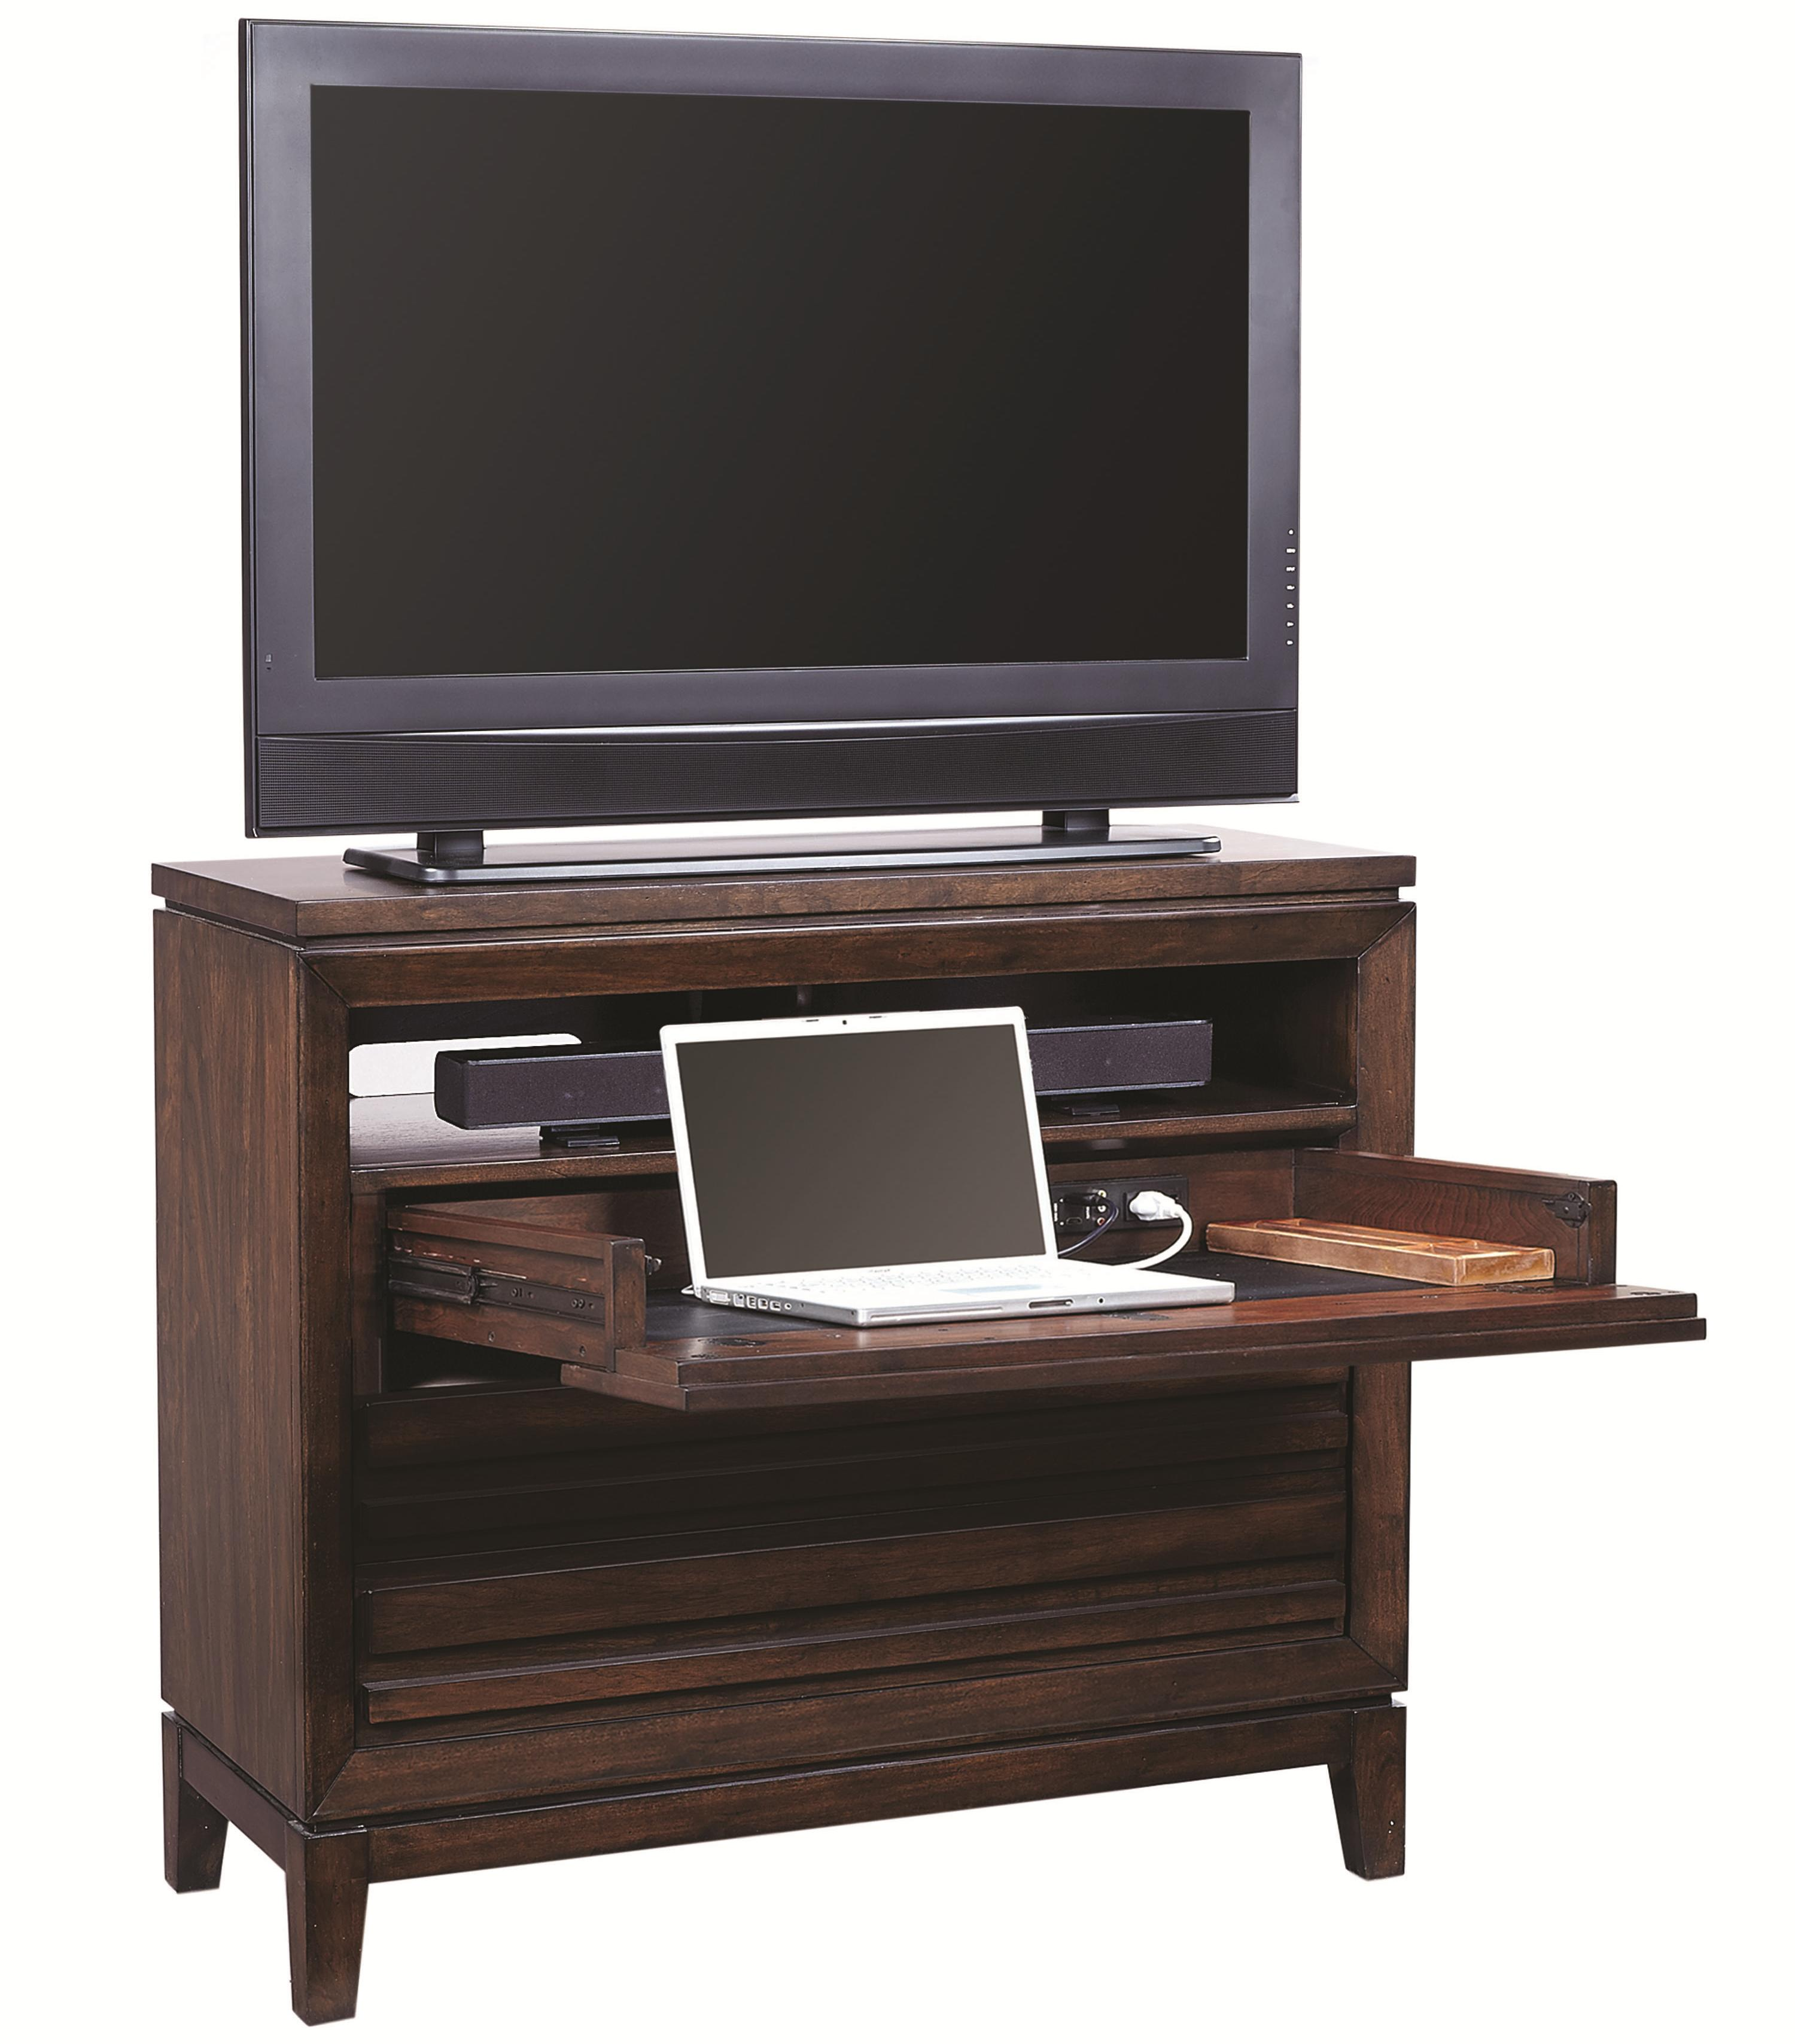 Aspenhome Walnut Park Liv360 Entertainment Chest - Item Number: I05-486